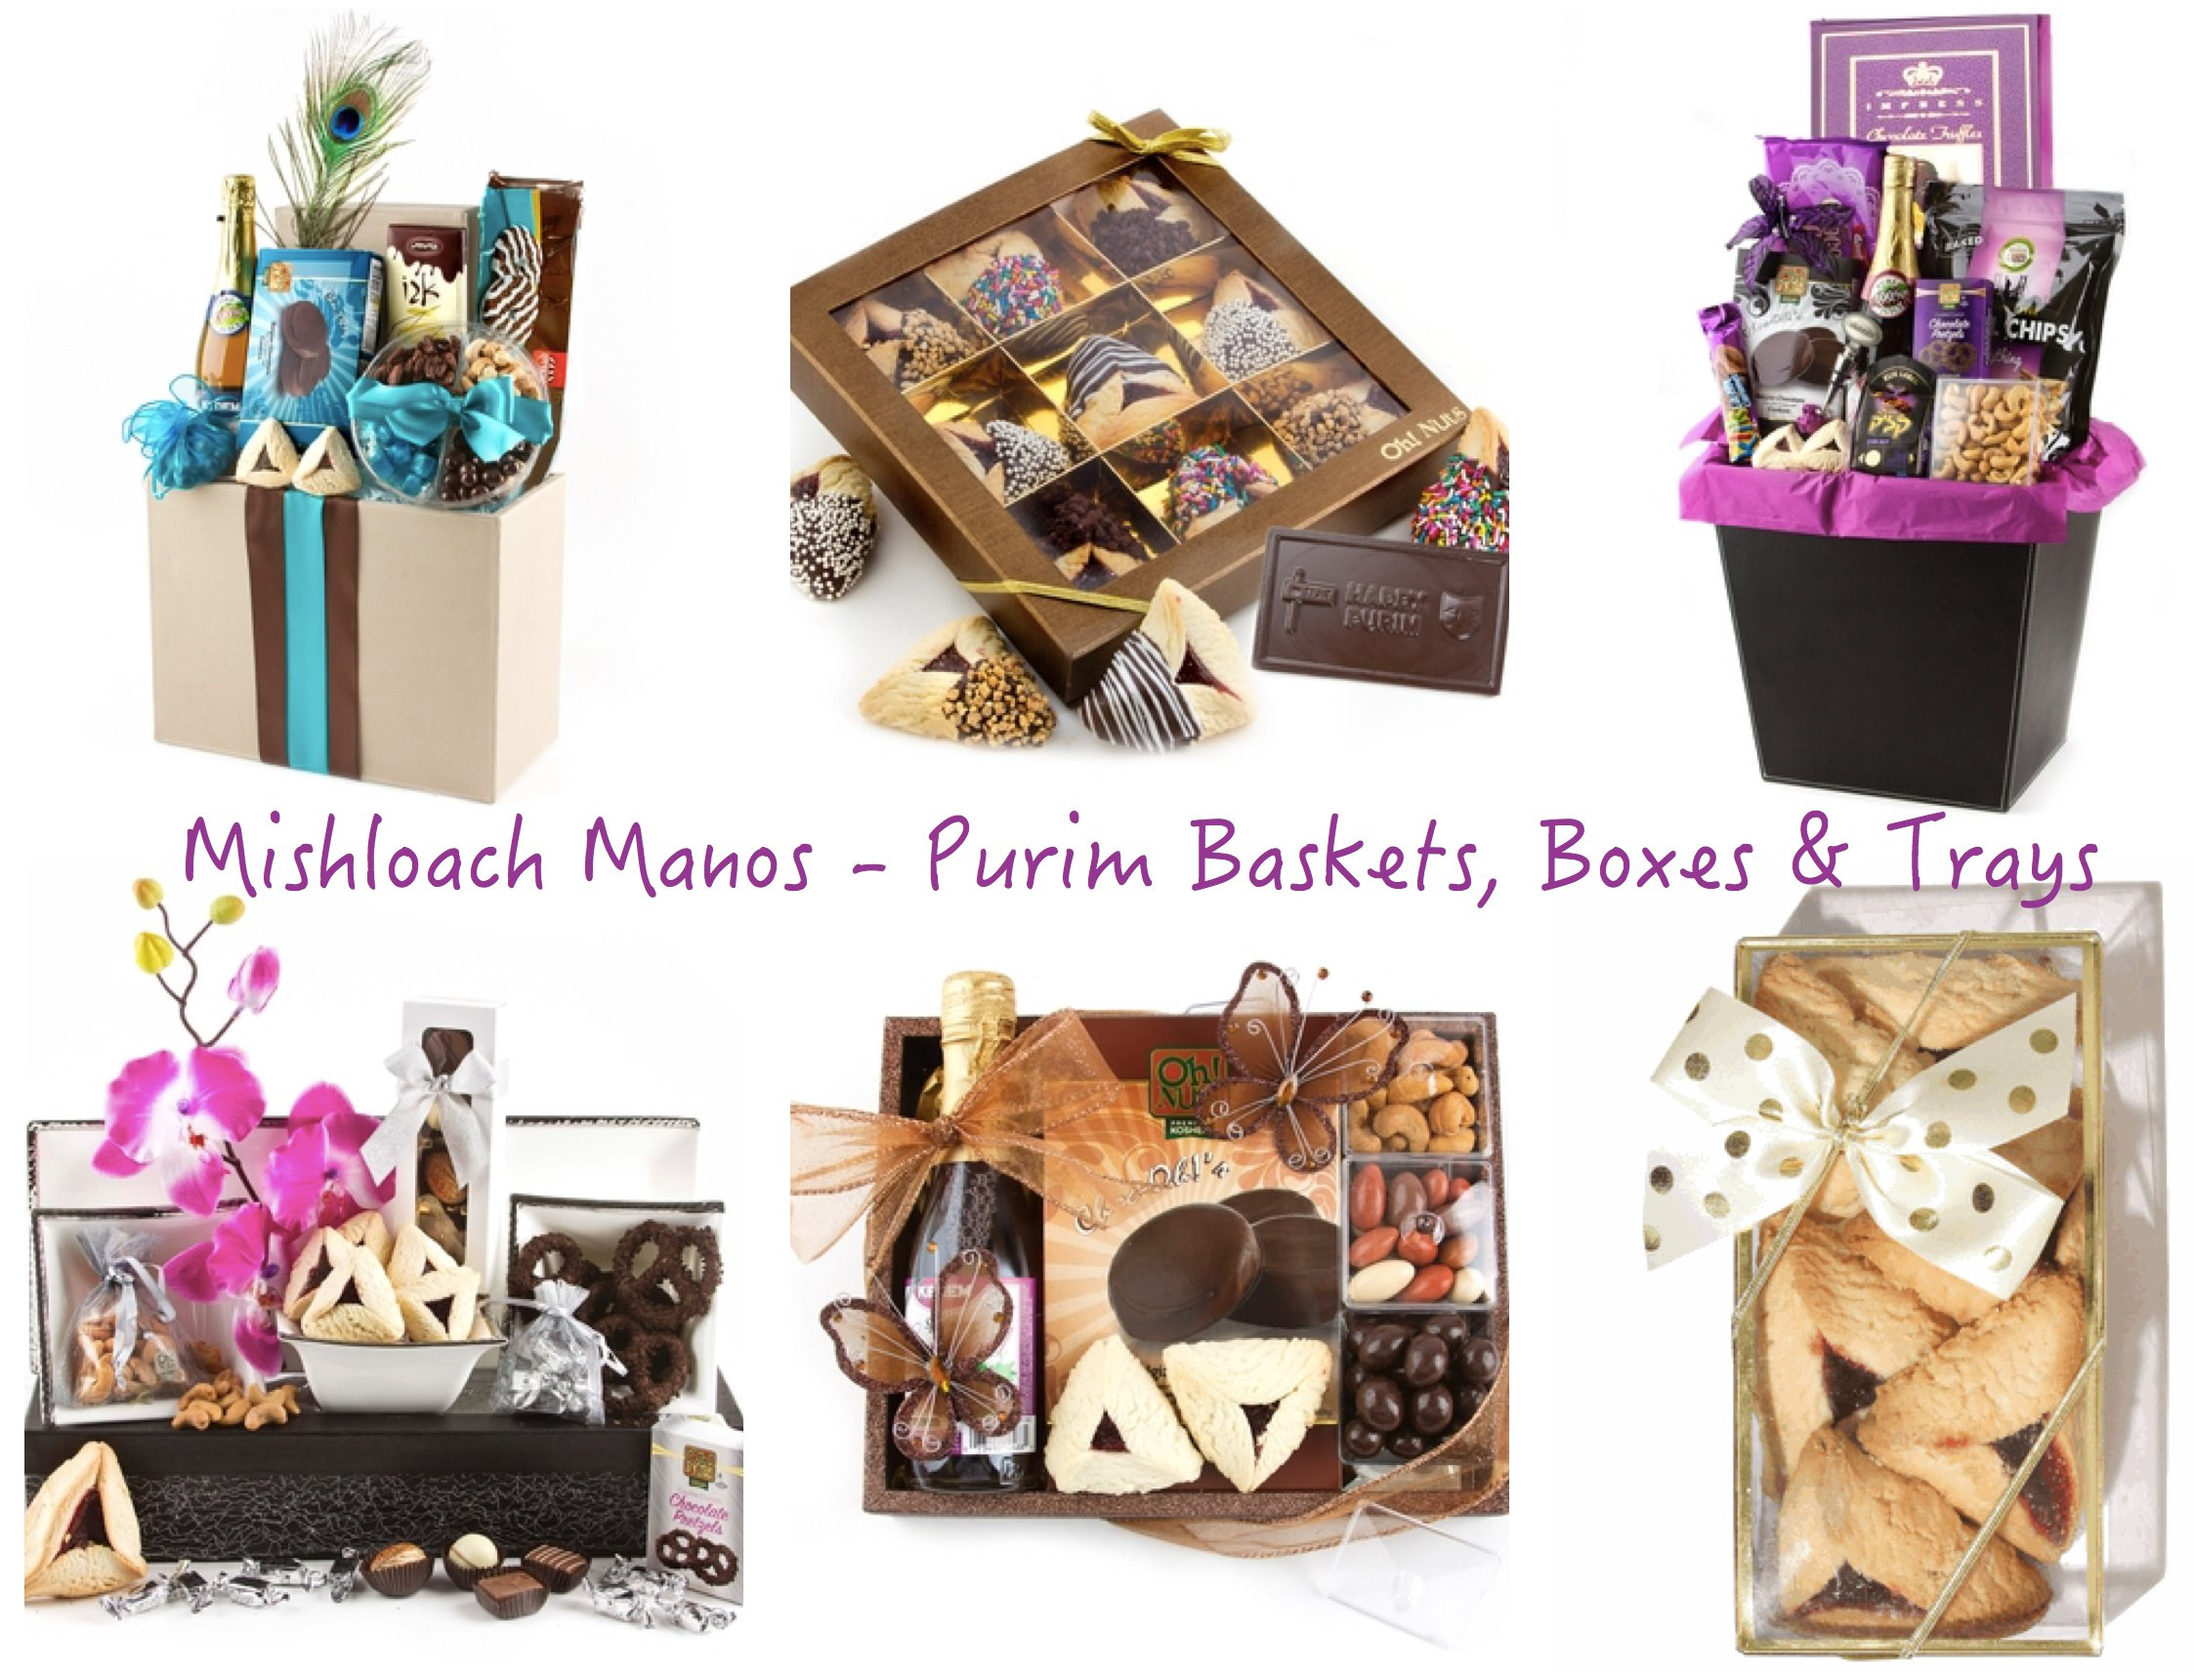 Mishloach Manos - Purim Baskets Boxes Trays